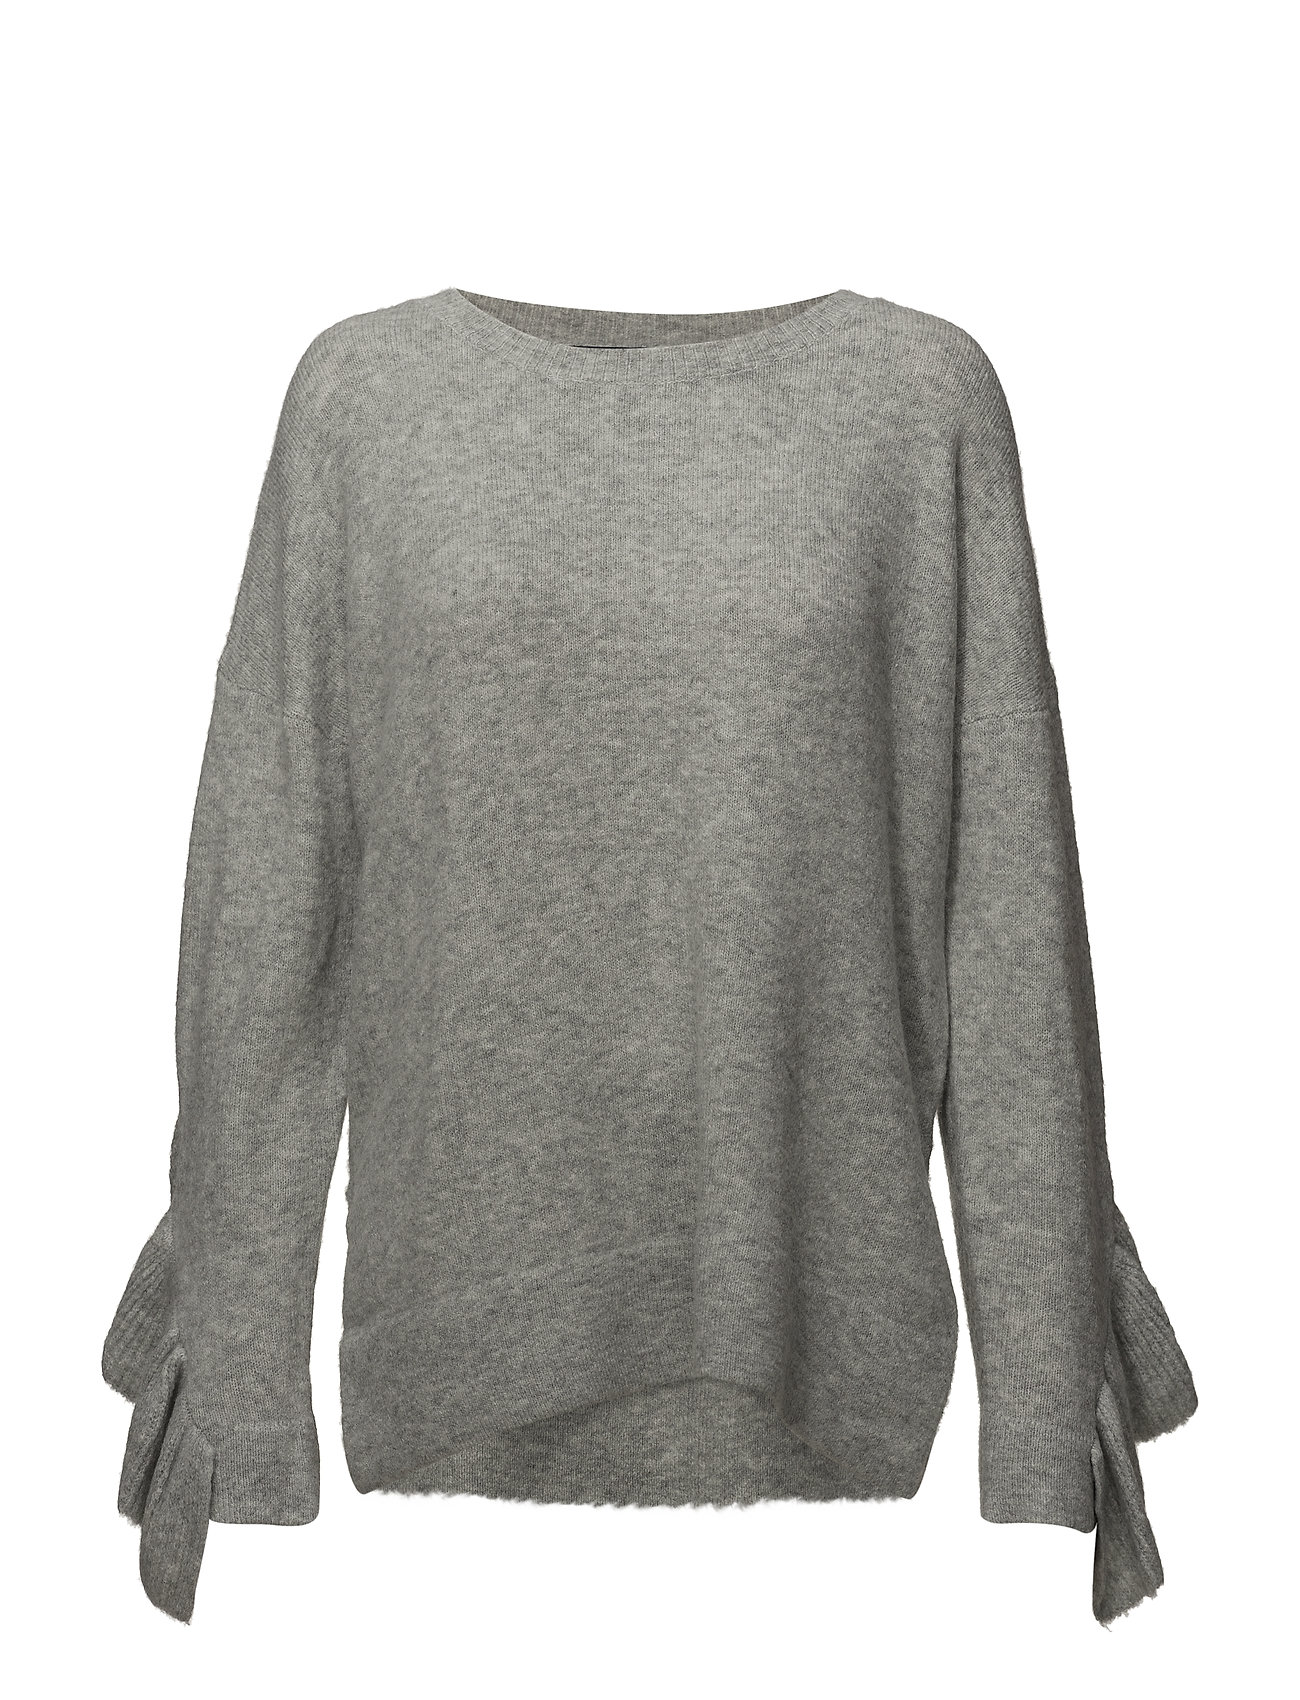 French Connection EMILDE KNITS LF FRILL JUMPER - LIGHT GREY MEL